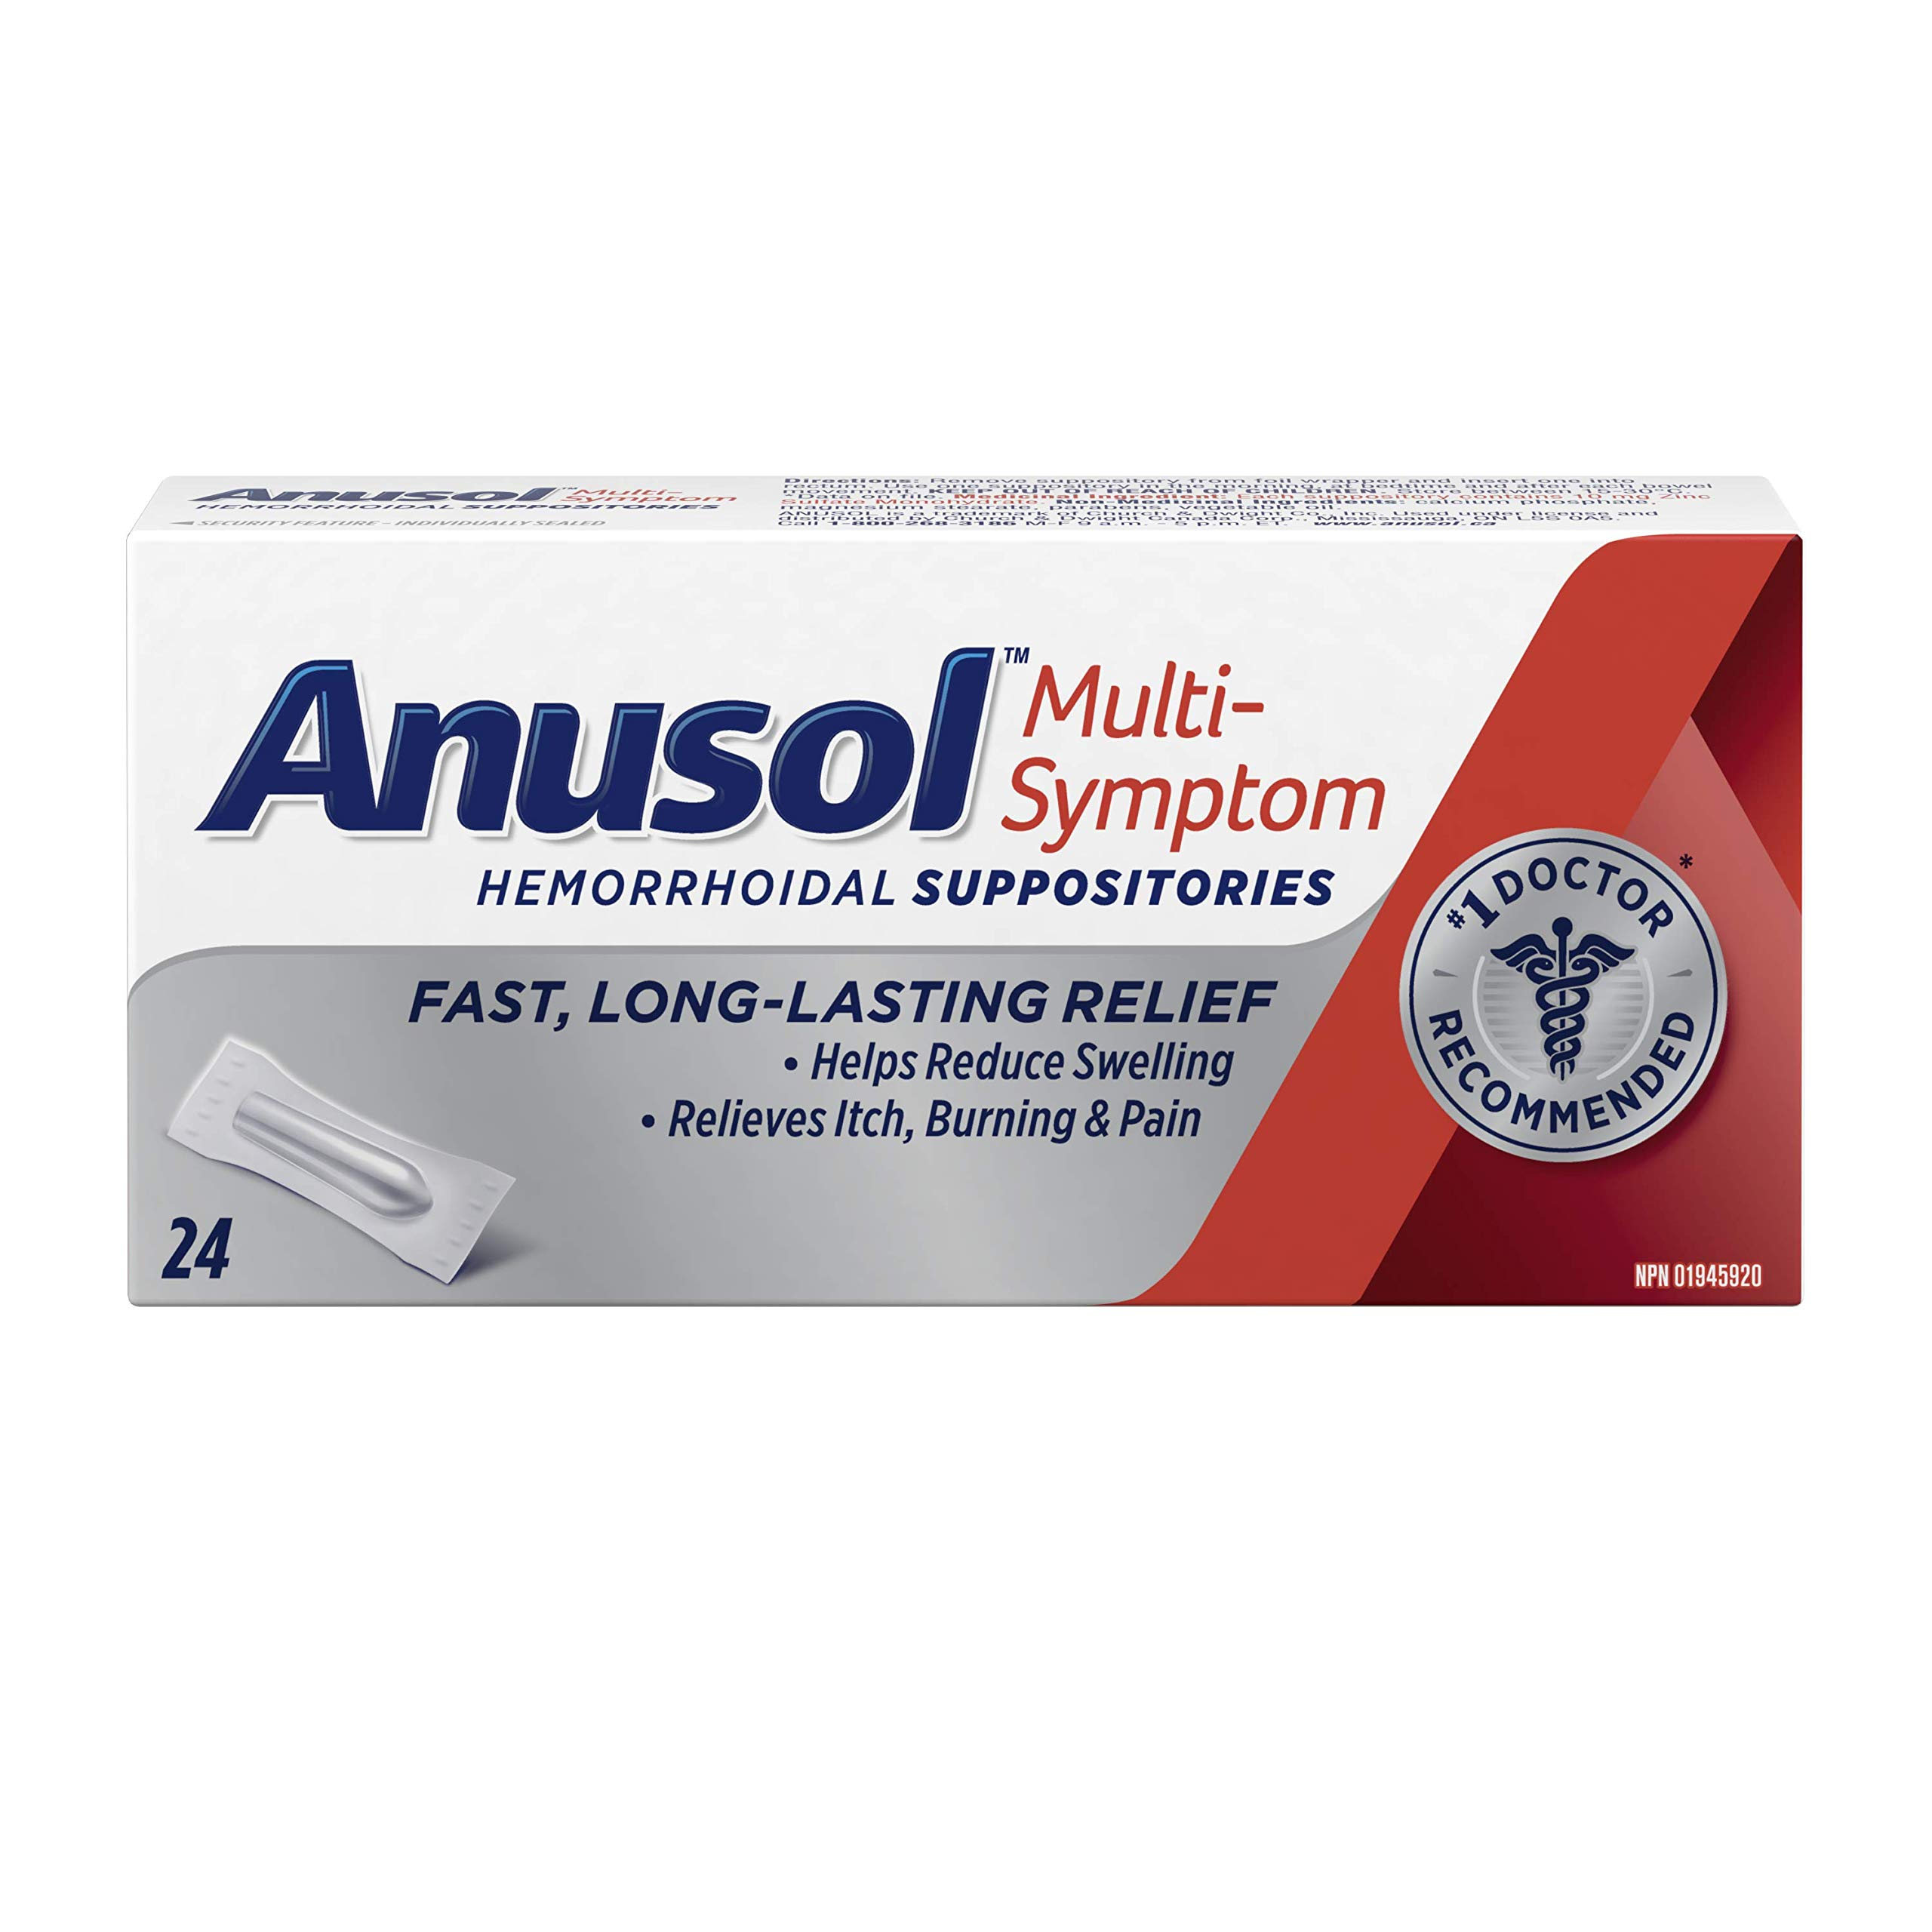 Anusol Suppositories 24 Tablets by Anusol